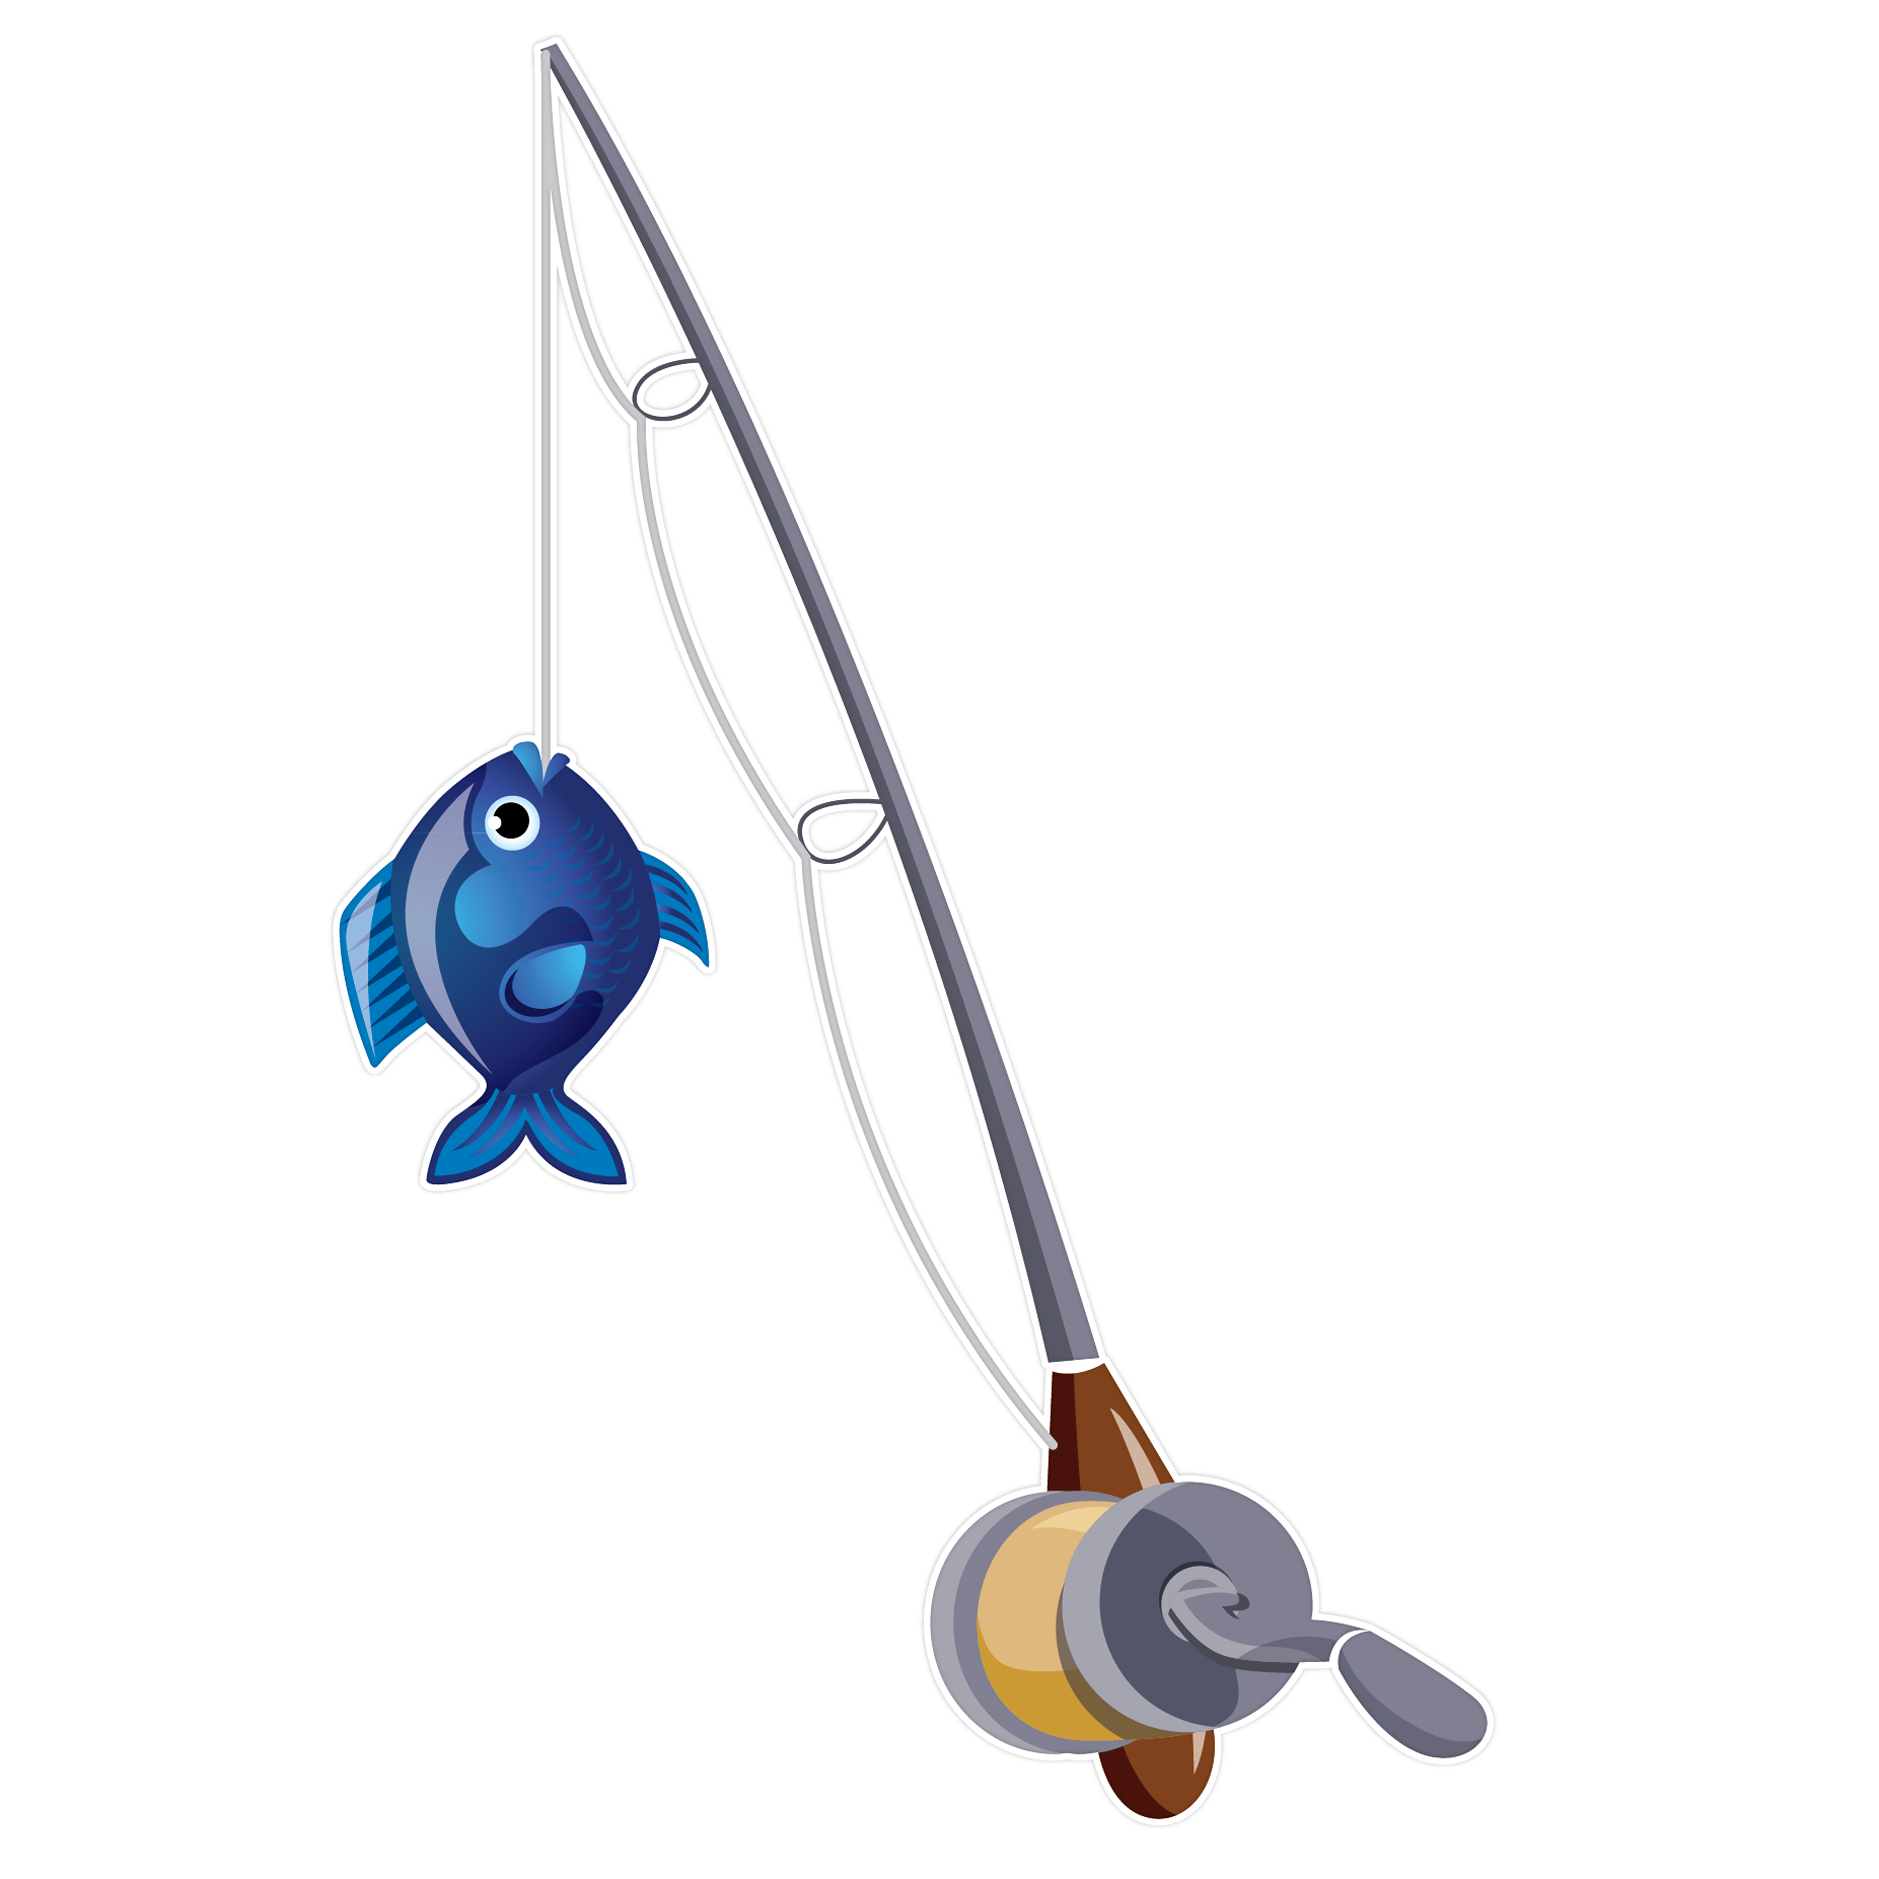 fish and fishing pole clipart - clipart kid, Fishing Rod